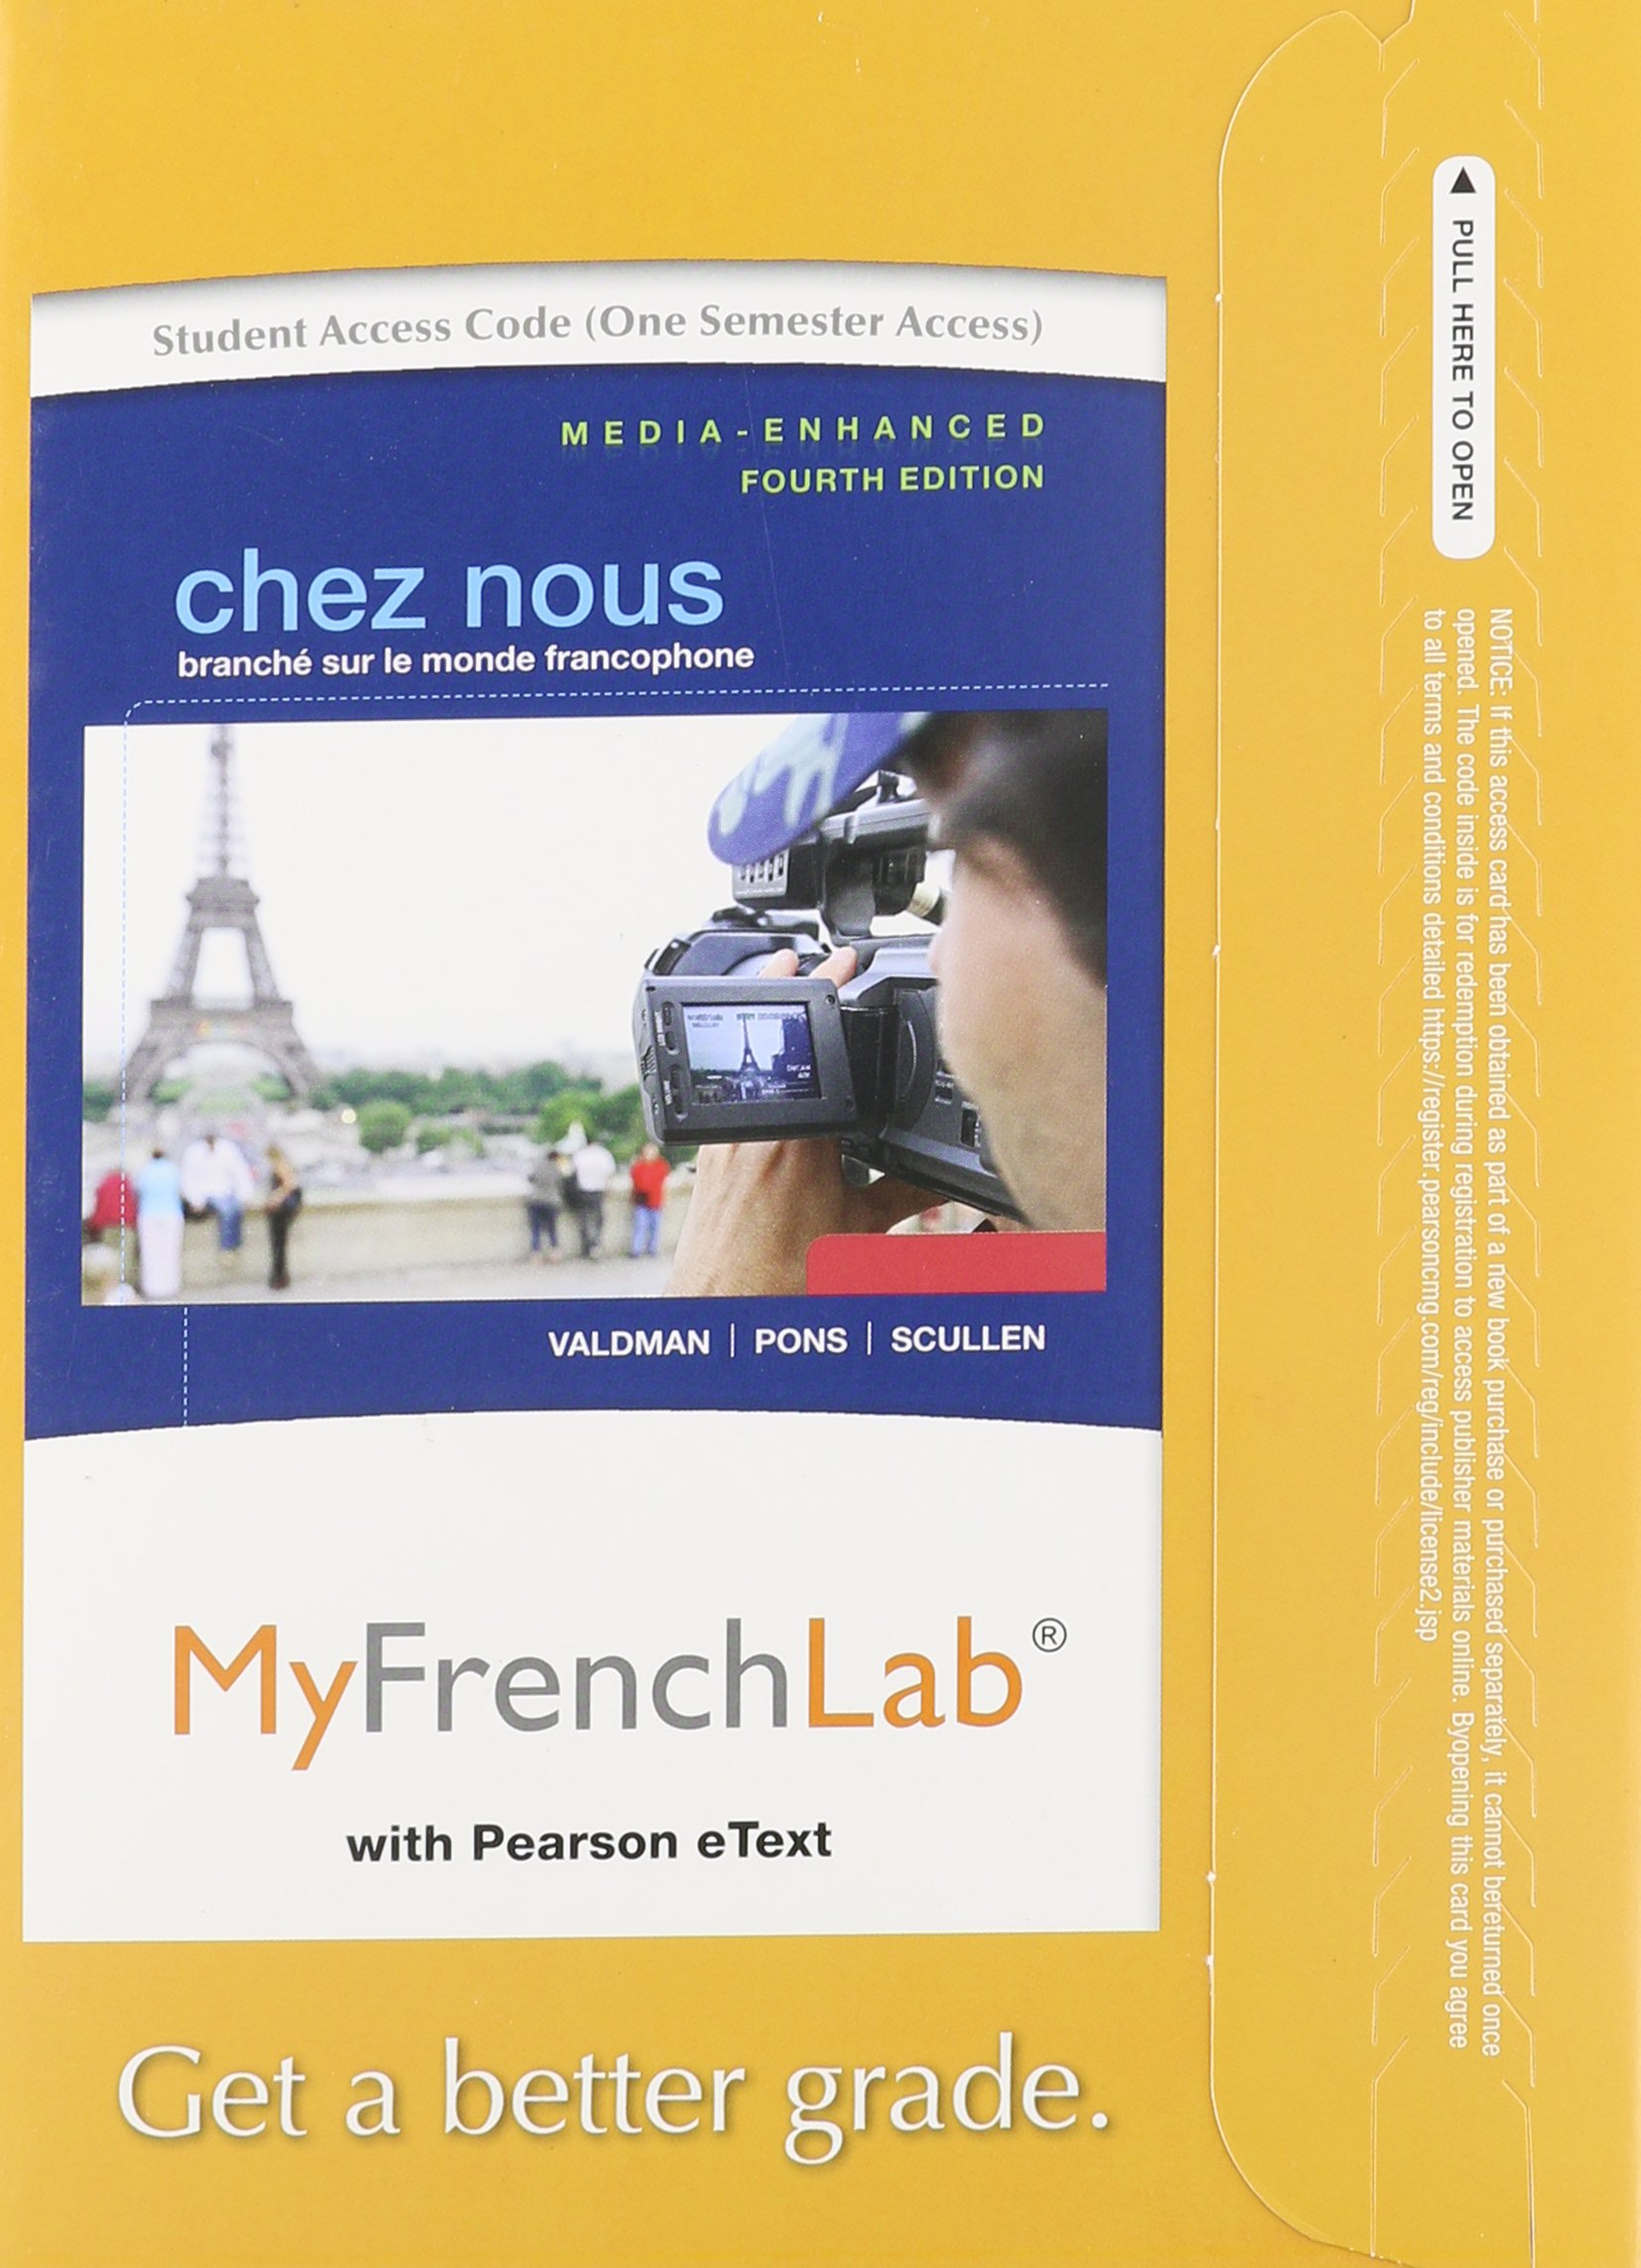 Buy MyFrenchLab with Pearson eText -- Access Card -- for Chez nous: Branché  sur le monde francophone, Media-Enhanced Version (one semester access) Book  ...